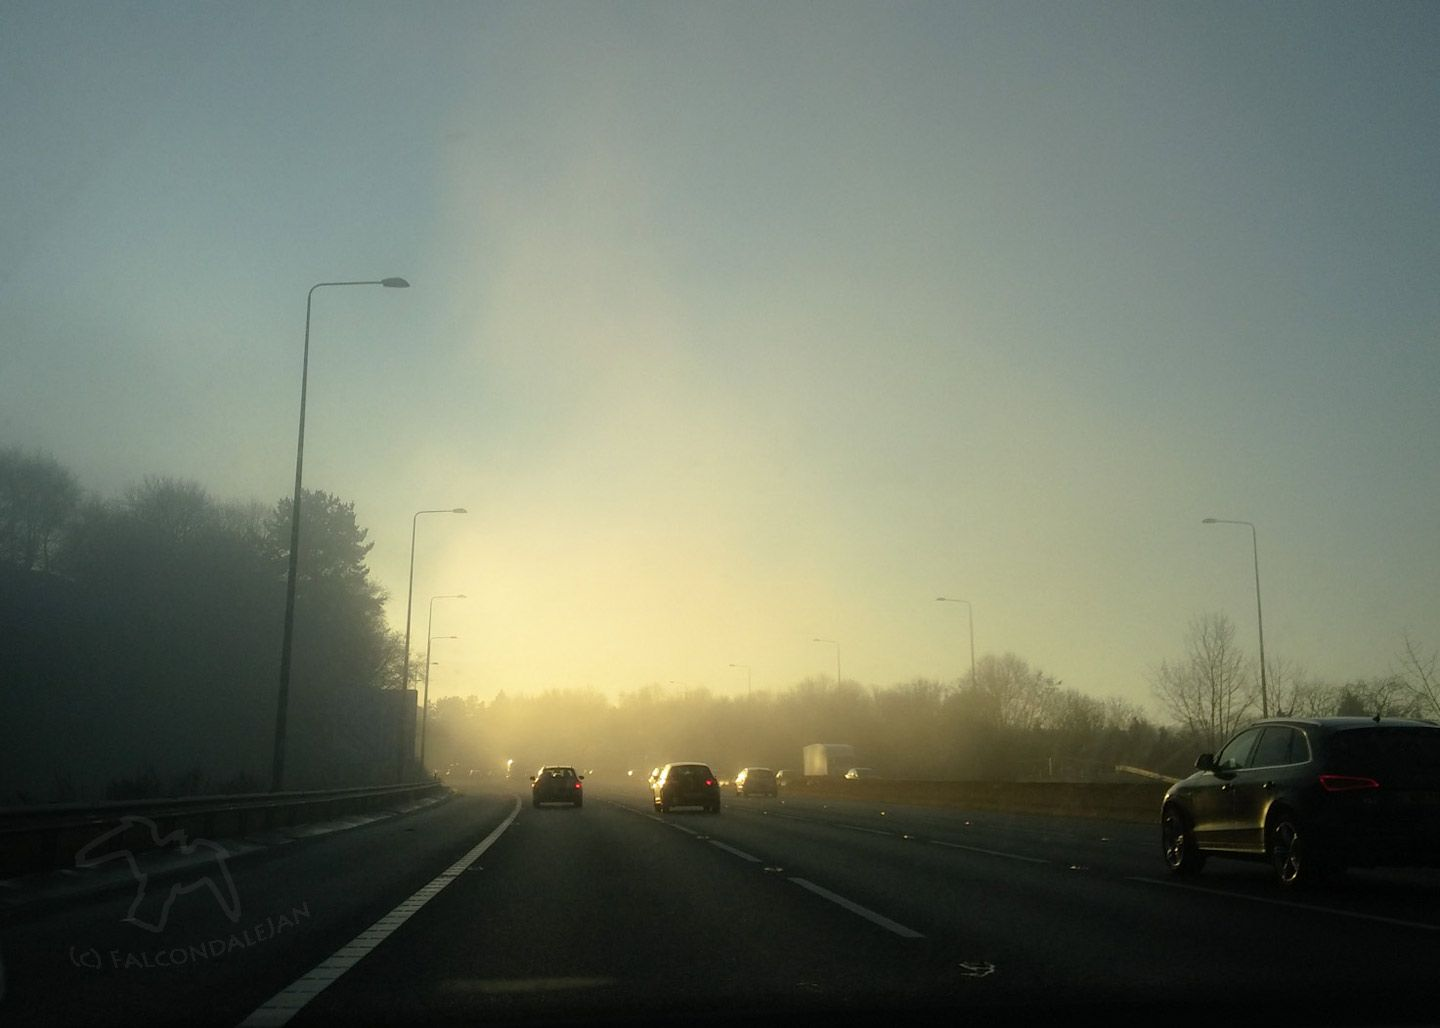 Winter Road Safety for Tween and Teenage Children on Falcondale Life blog. What advice do I give my tween and teenage children about winter road safety? Useful tips for them as pedestrians, cyclists and car passengers. Winter motorway driving, mist and glare.